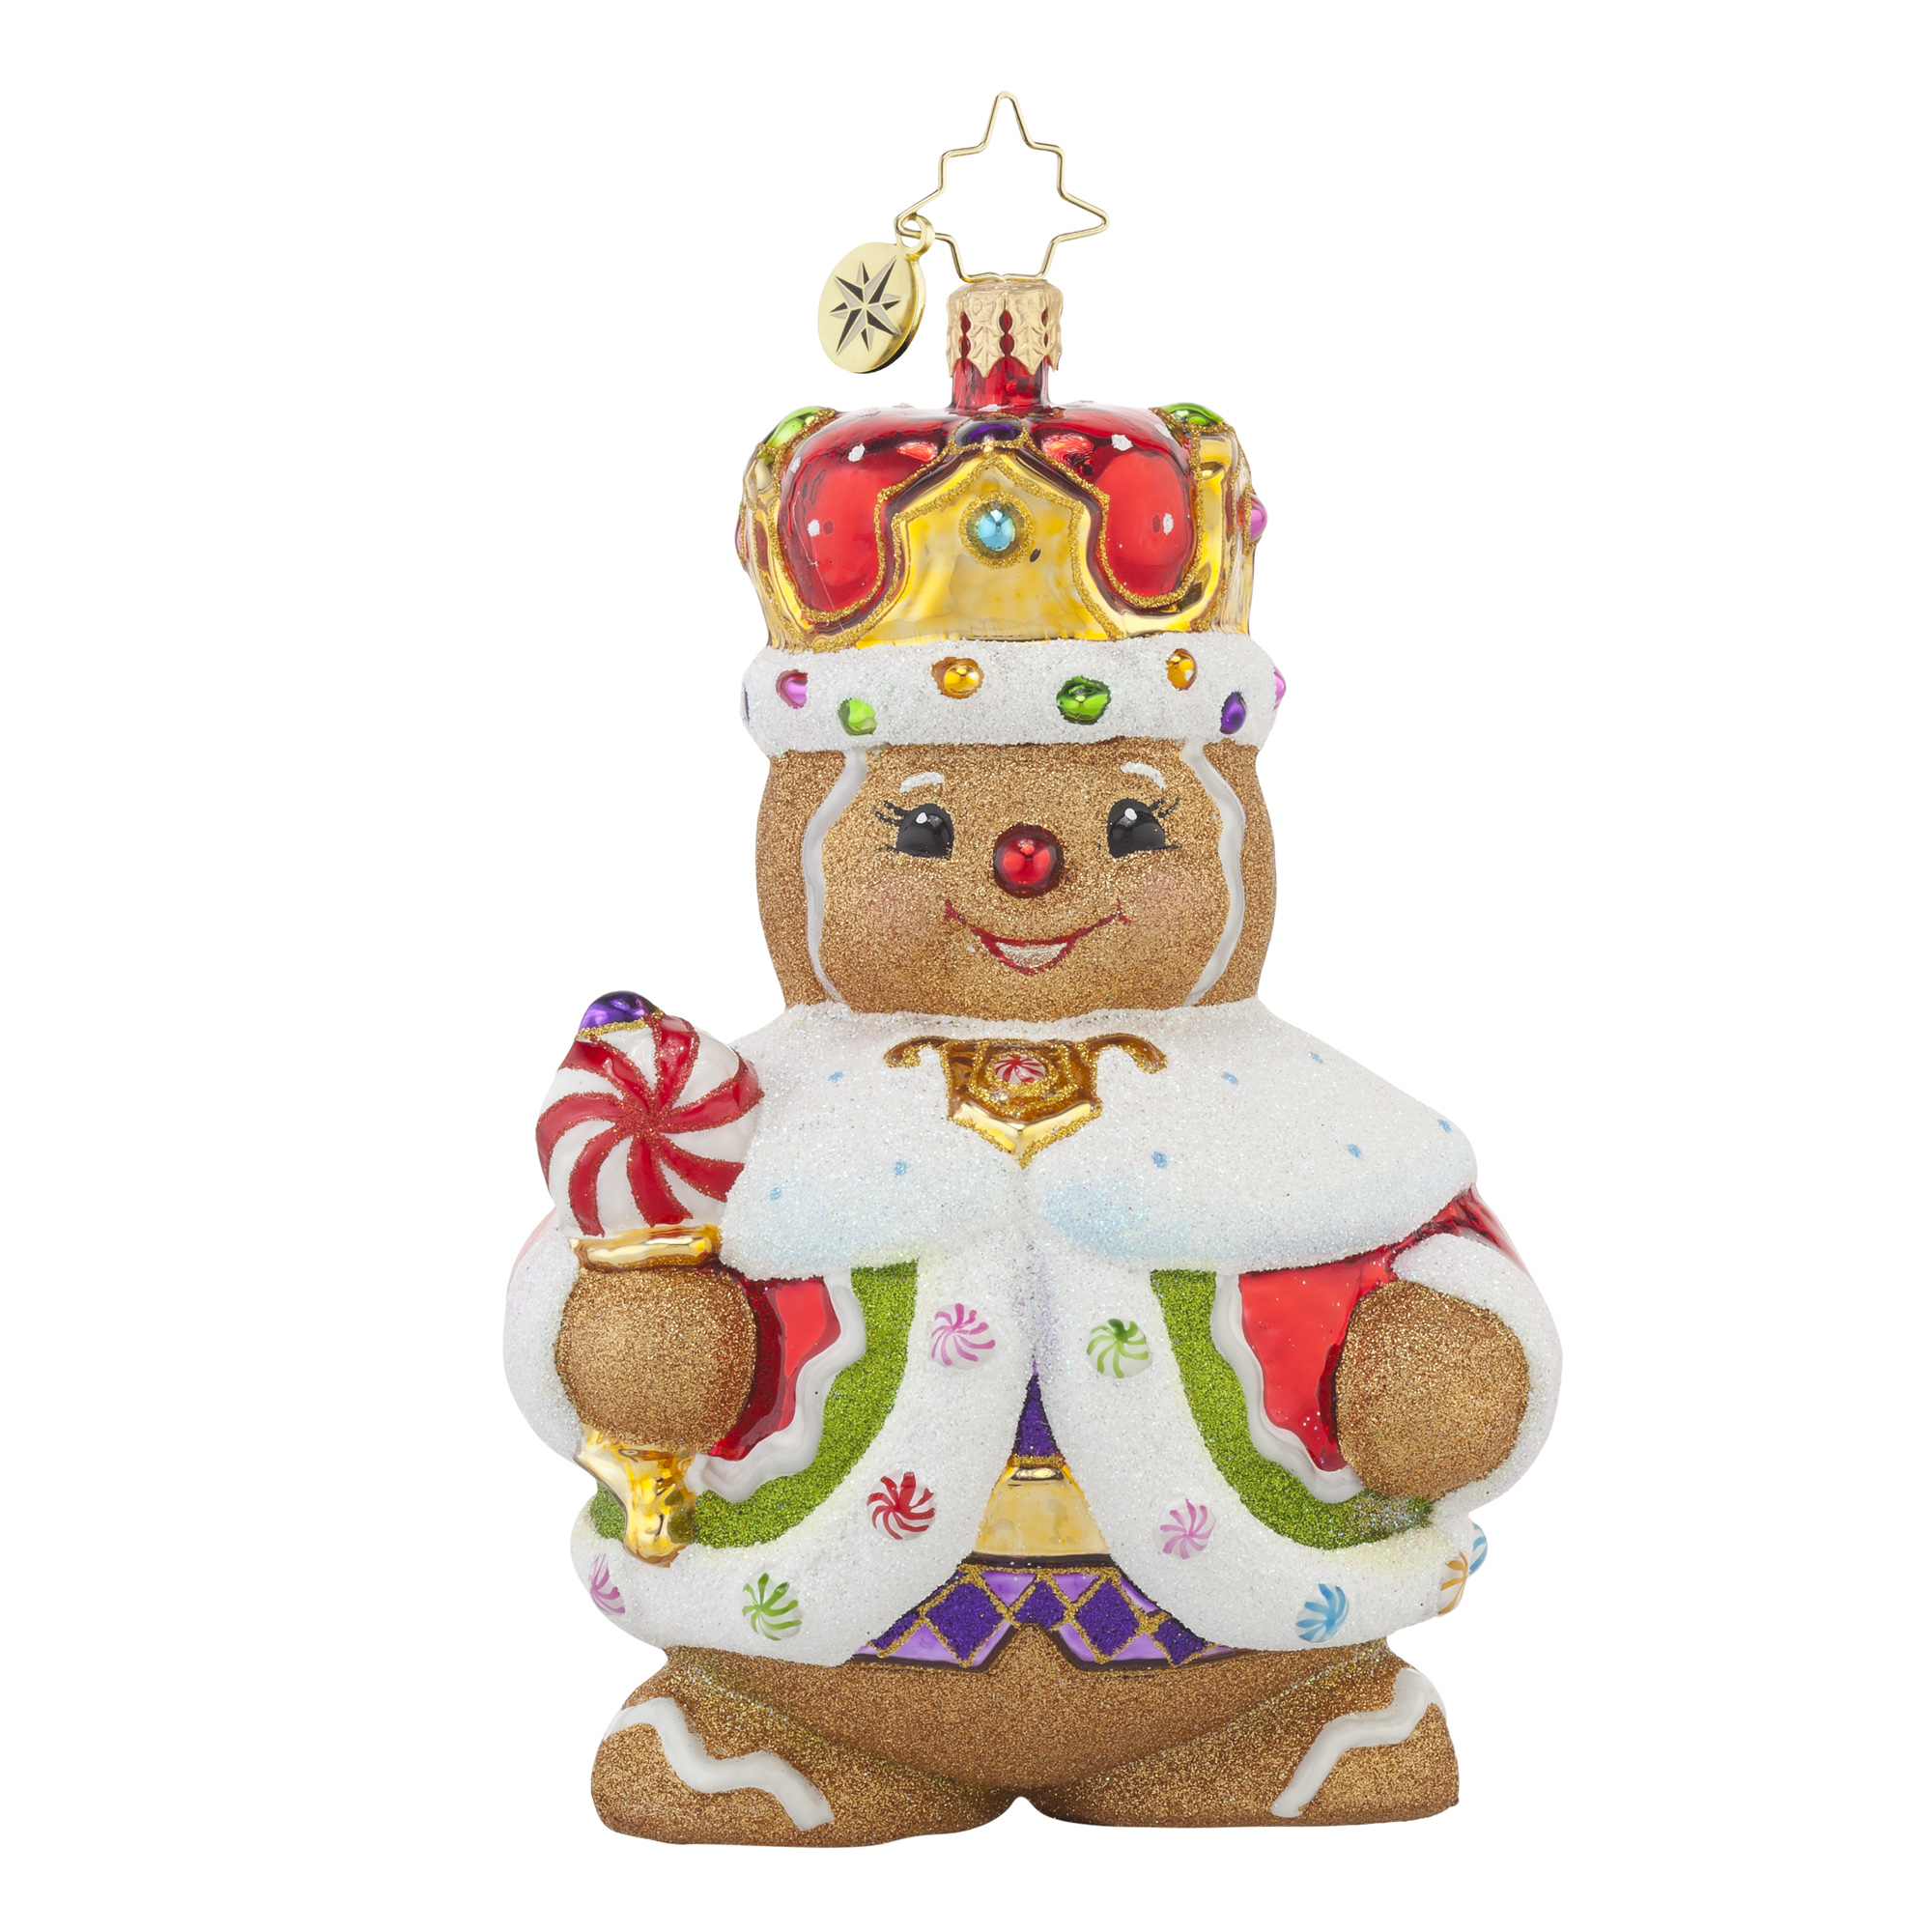 Gingerbread man ornaments - Radko 1017697 Ginger King Gingerbread Man With Crown Ornament New 2015 15 7